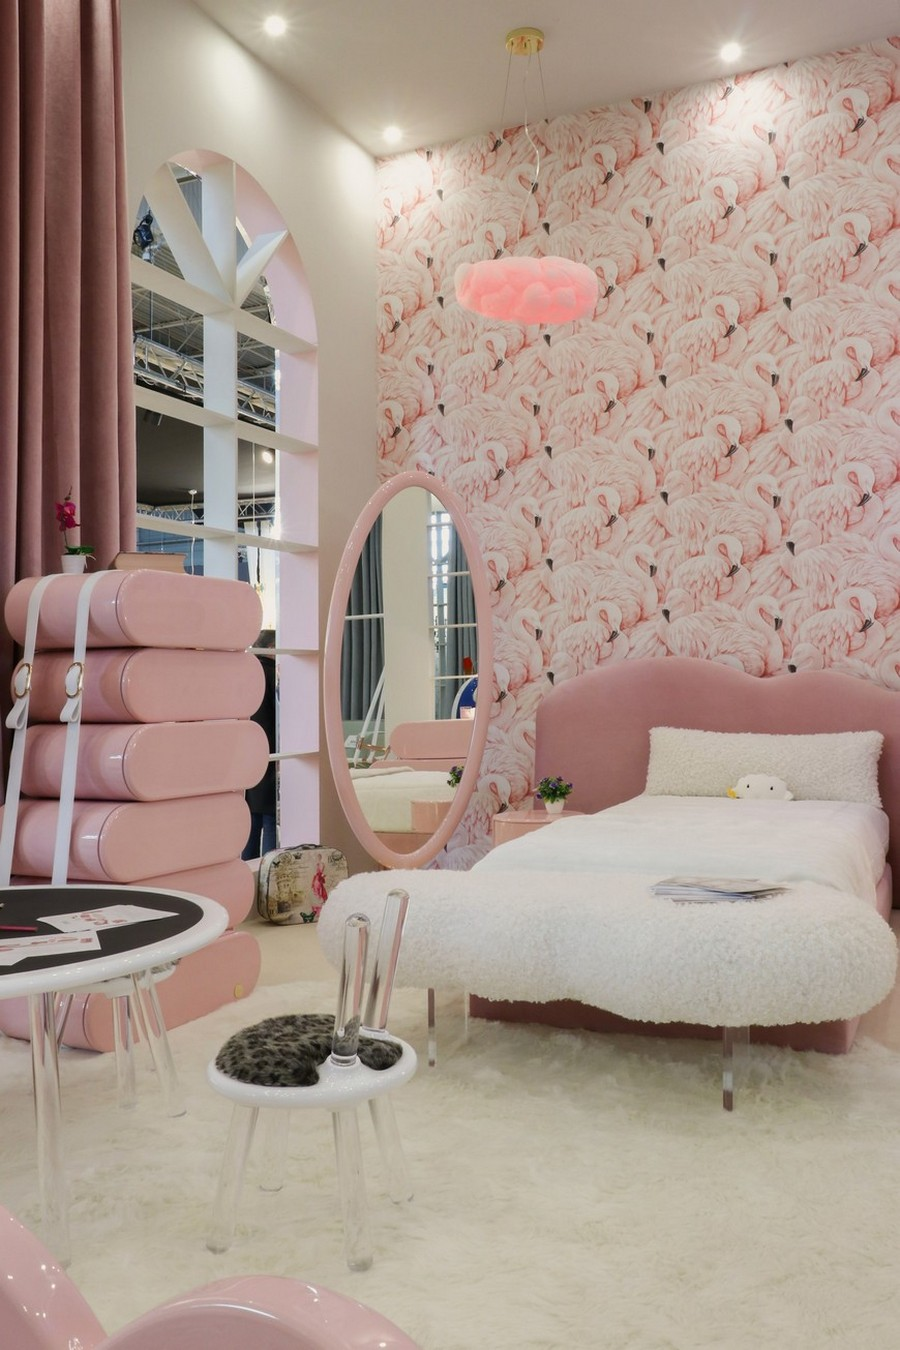 Outstanding Furniture Design Trends to See in Upcoming Events (11)